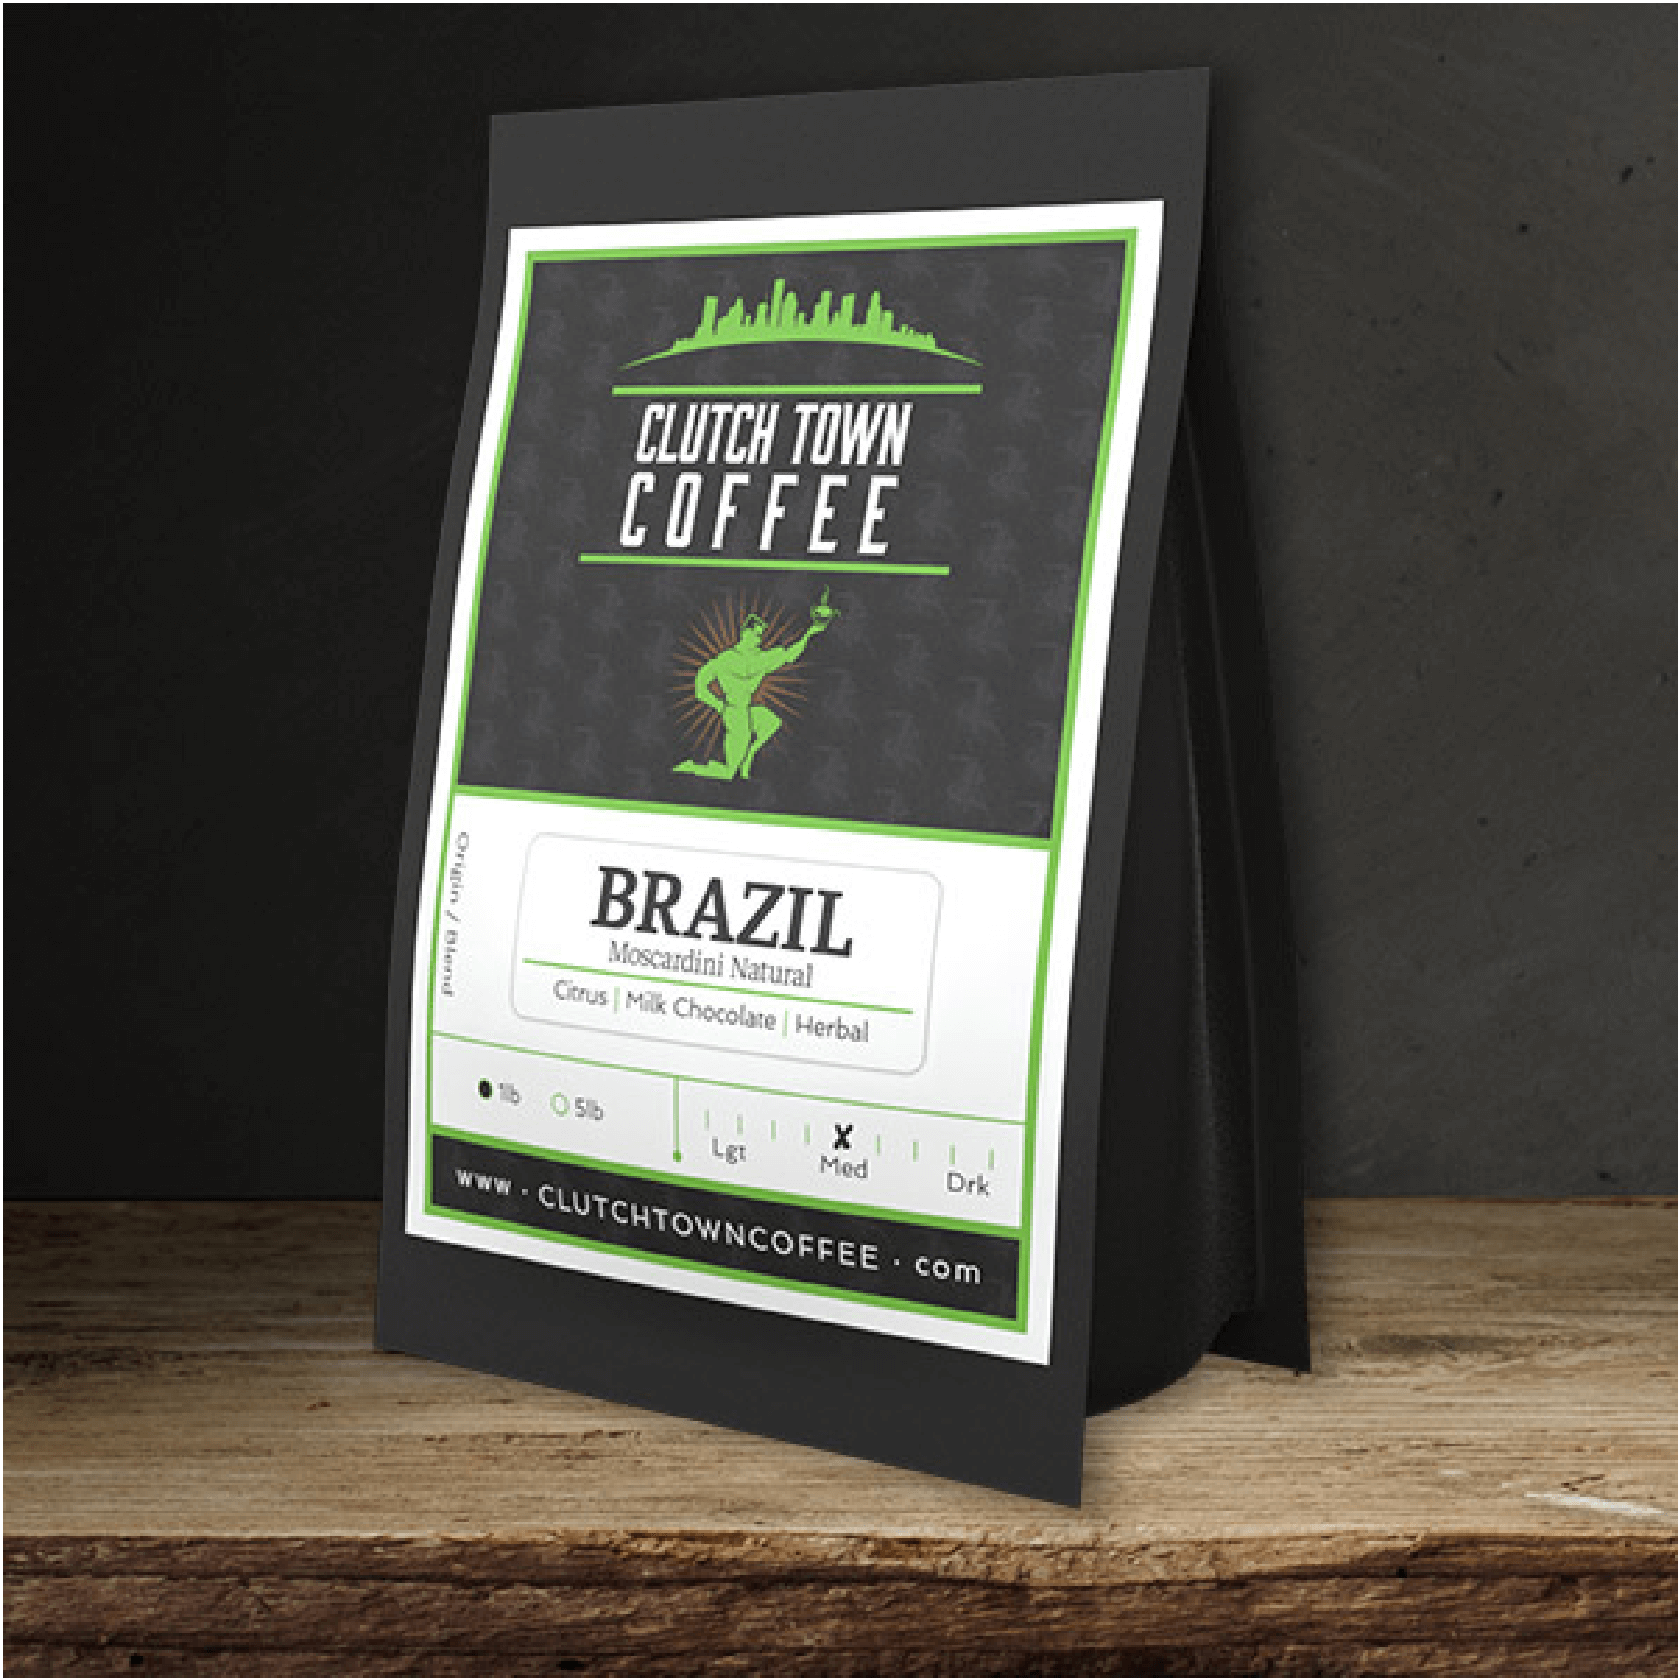 Brazil from Clutch Town Coffee